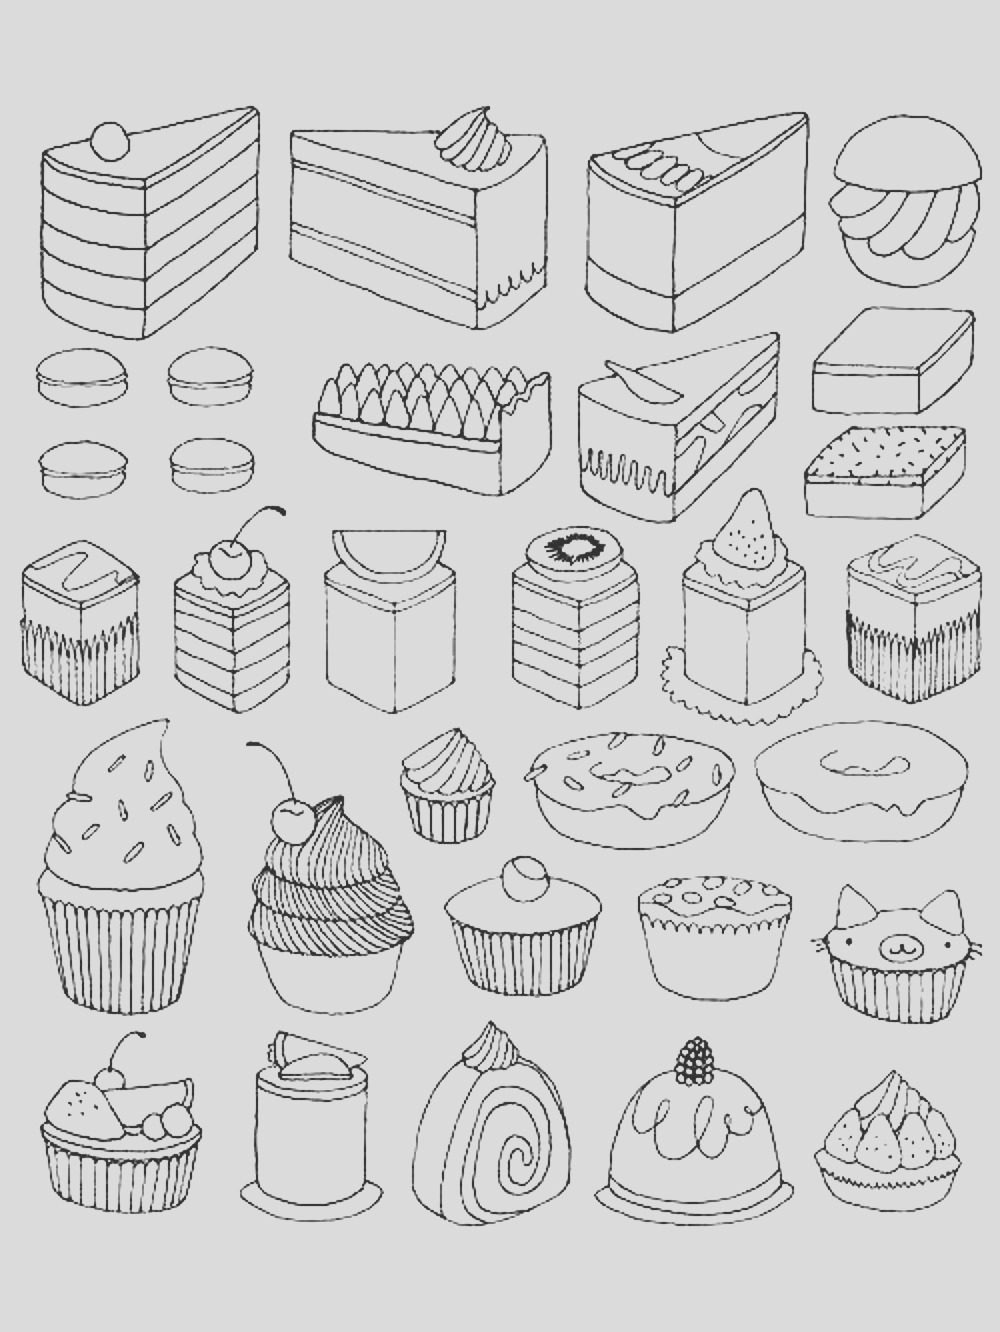 image=cup cakes coloring adult cupcakes and little cakes 1